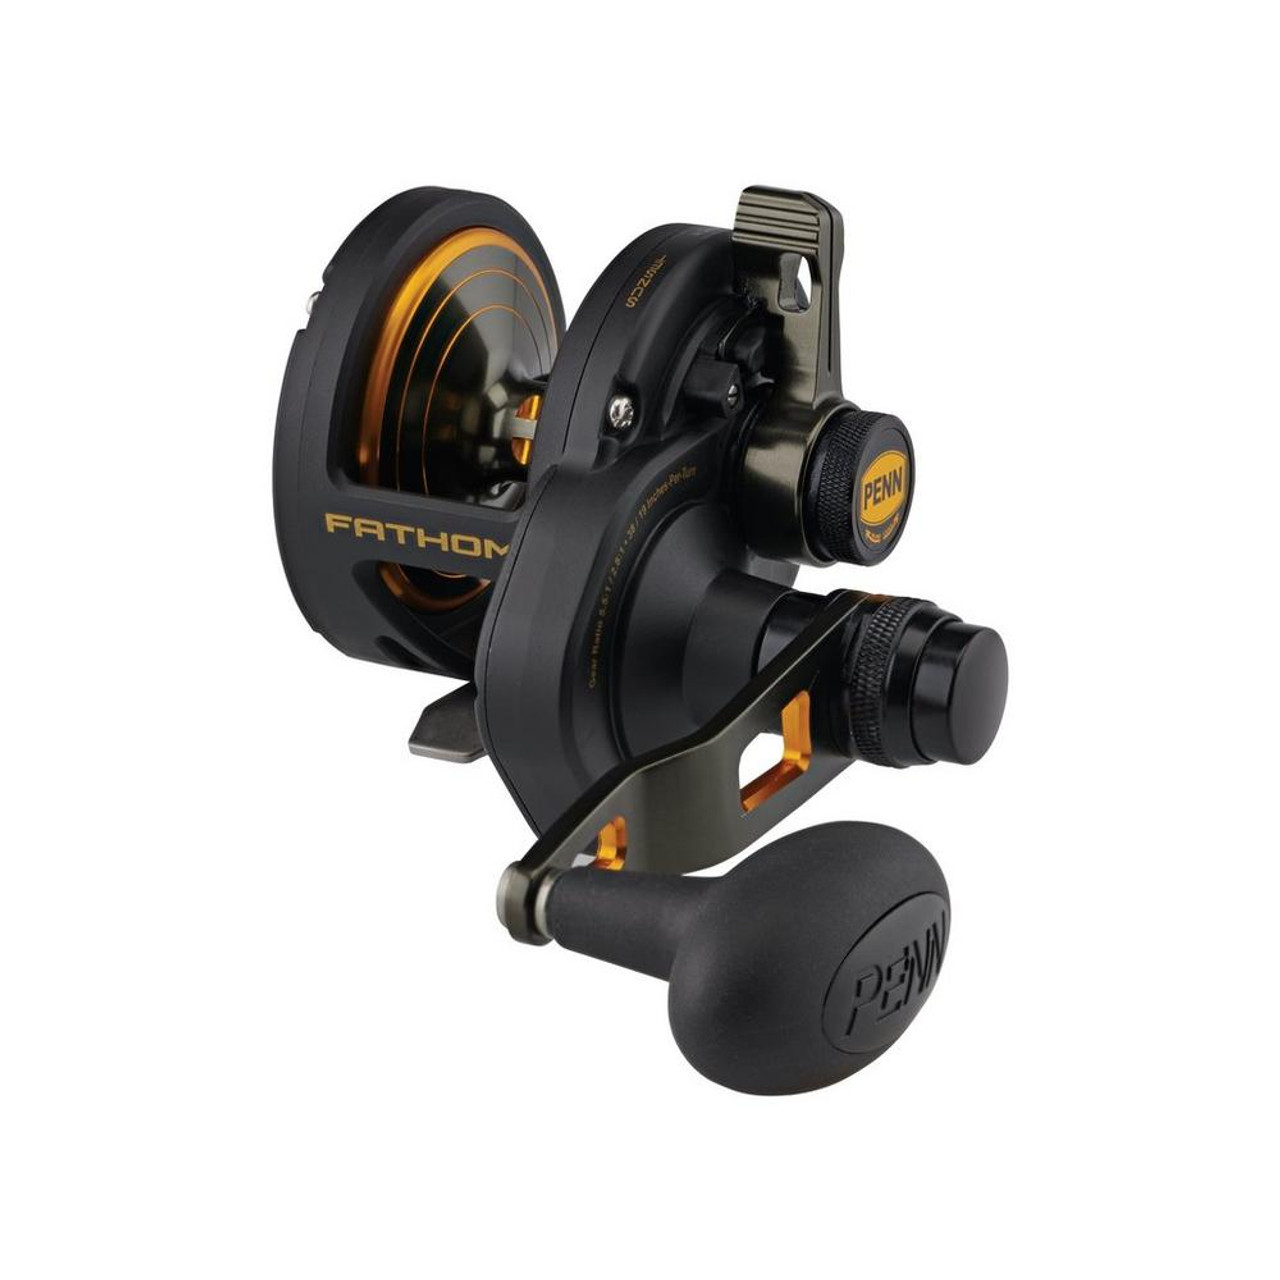 The PENN Fathom lever drag 2-speed series of reels are compact, ultra narrow - finally!!!  but loaded with big features. Featuring a Full Metal Body, stainless steel main and pinion gear, Dura-Drag washers, and a double dog ratchet anti- reverse you will find there is no stopping these reels.